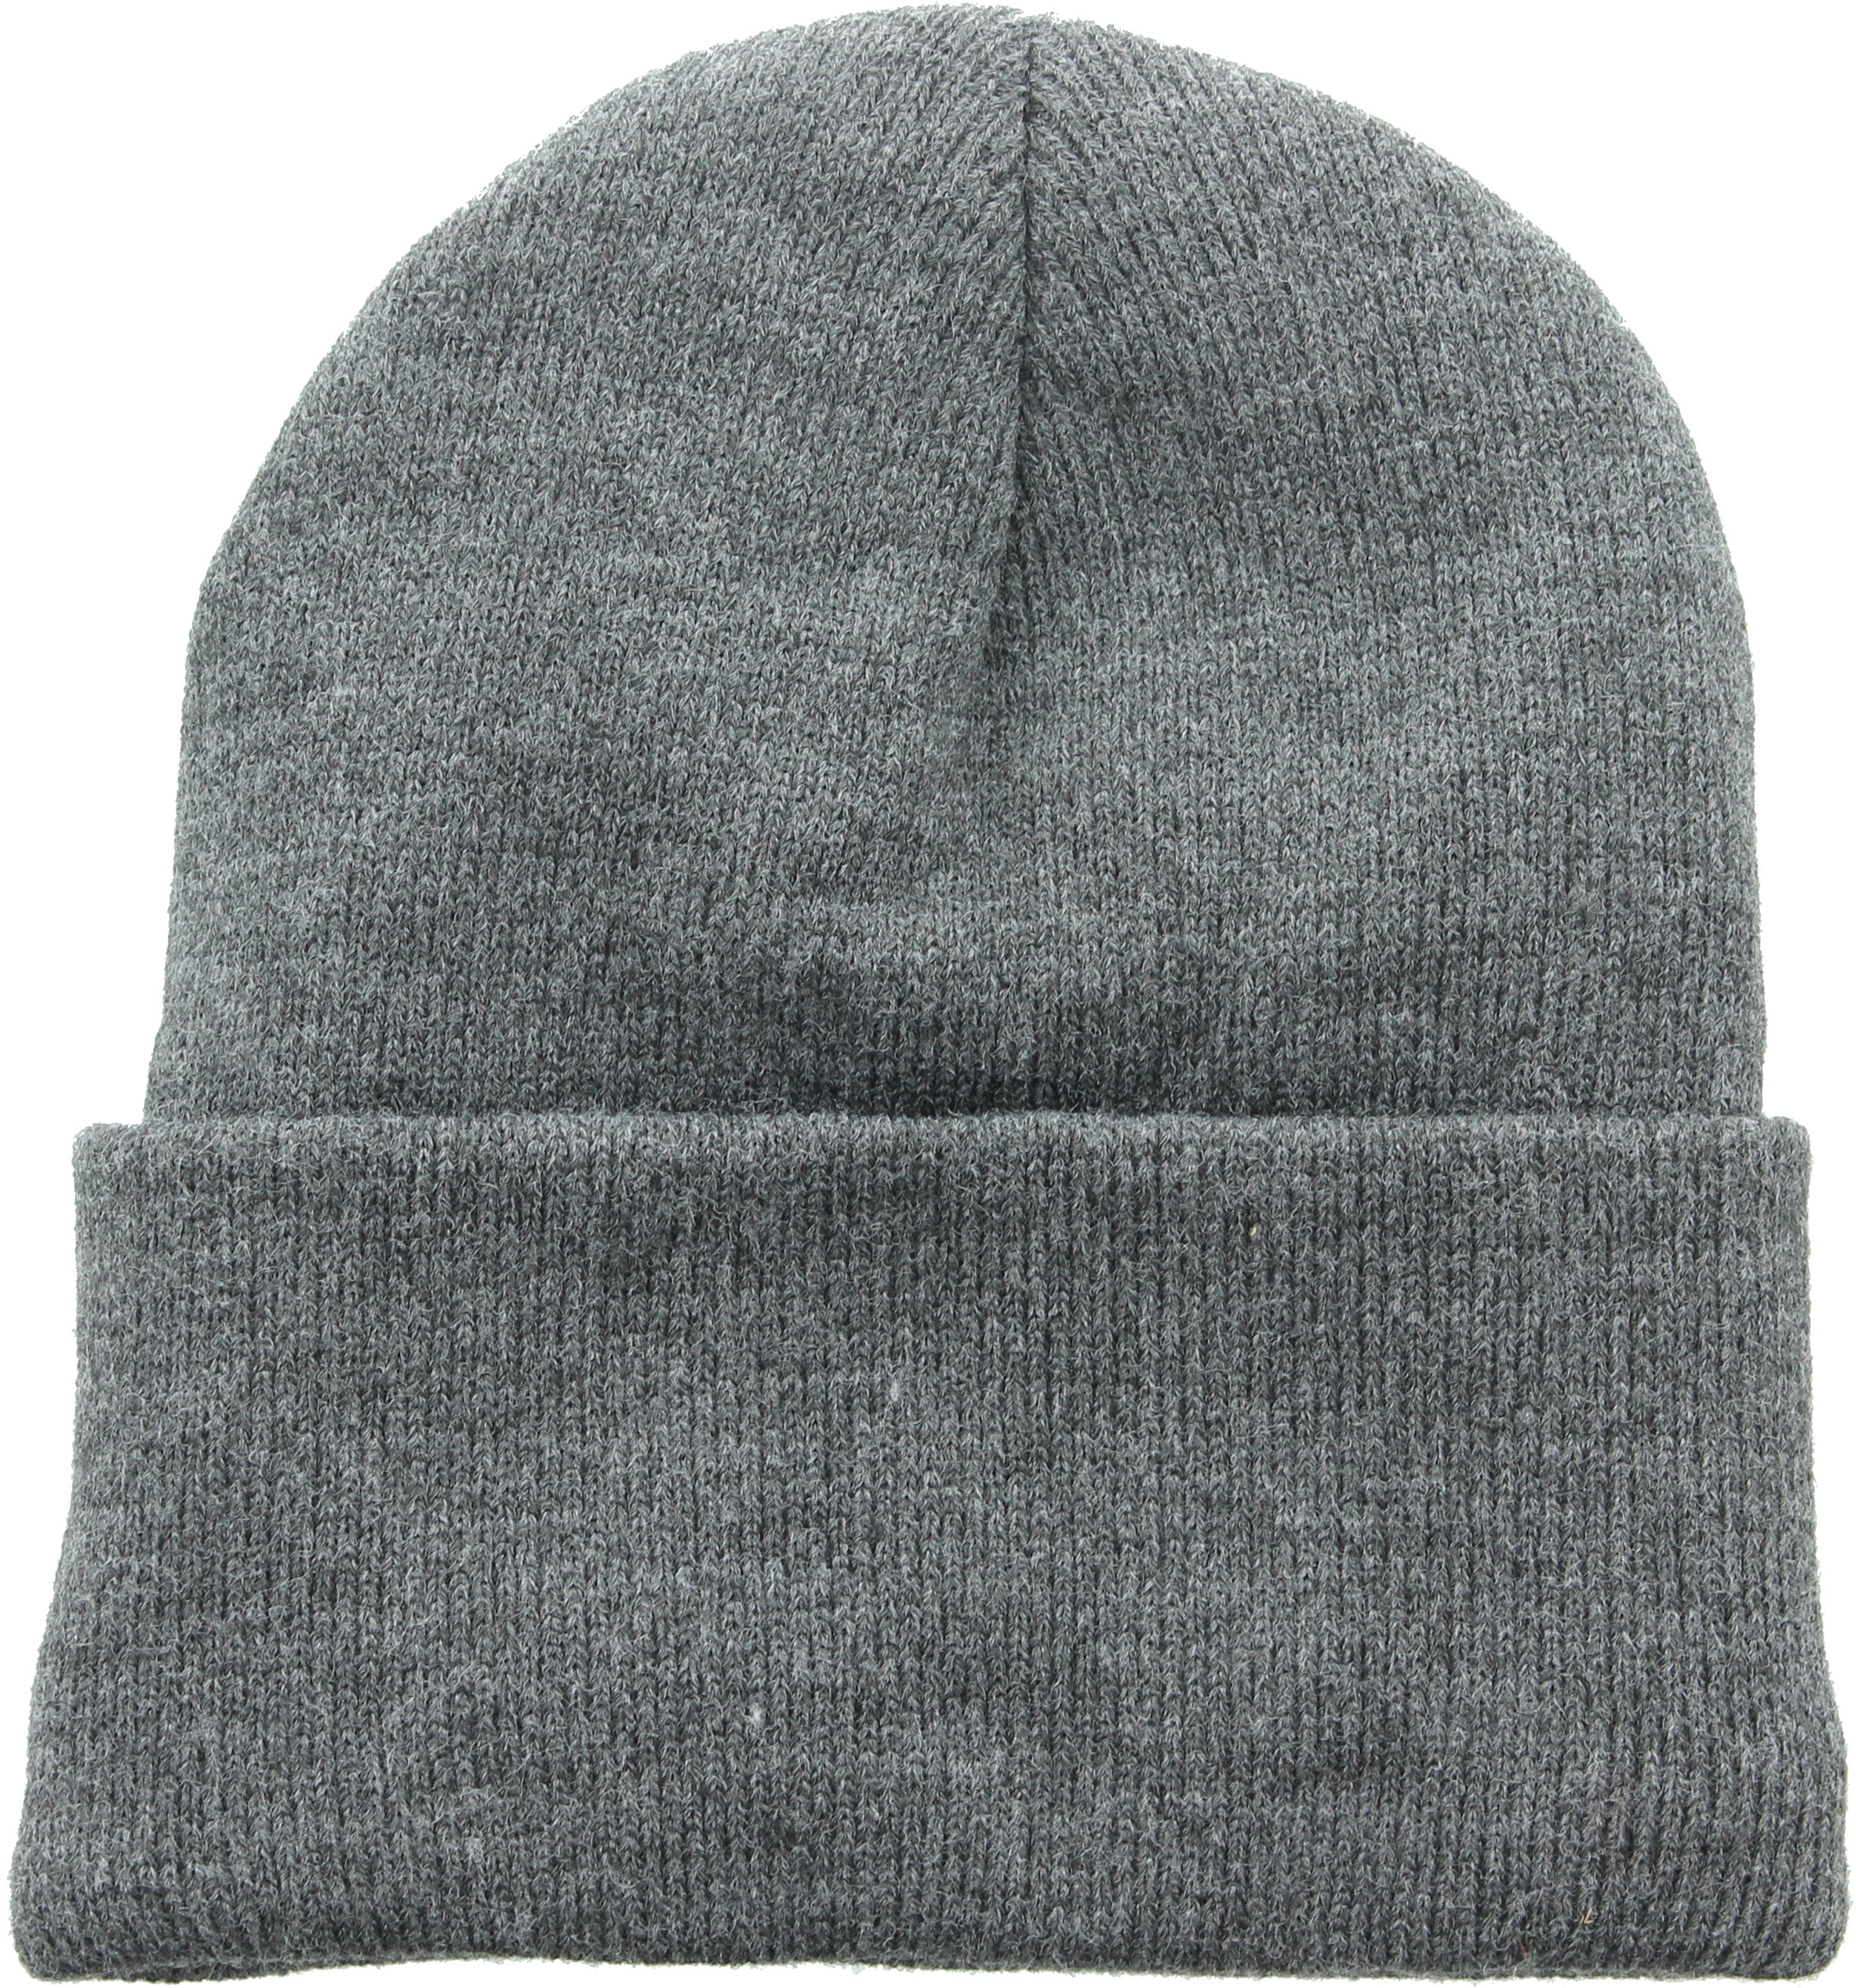 Big House Cold Weather Heavy Winter Fleece Lined Watch Cap USA ... 4352326d081